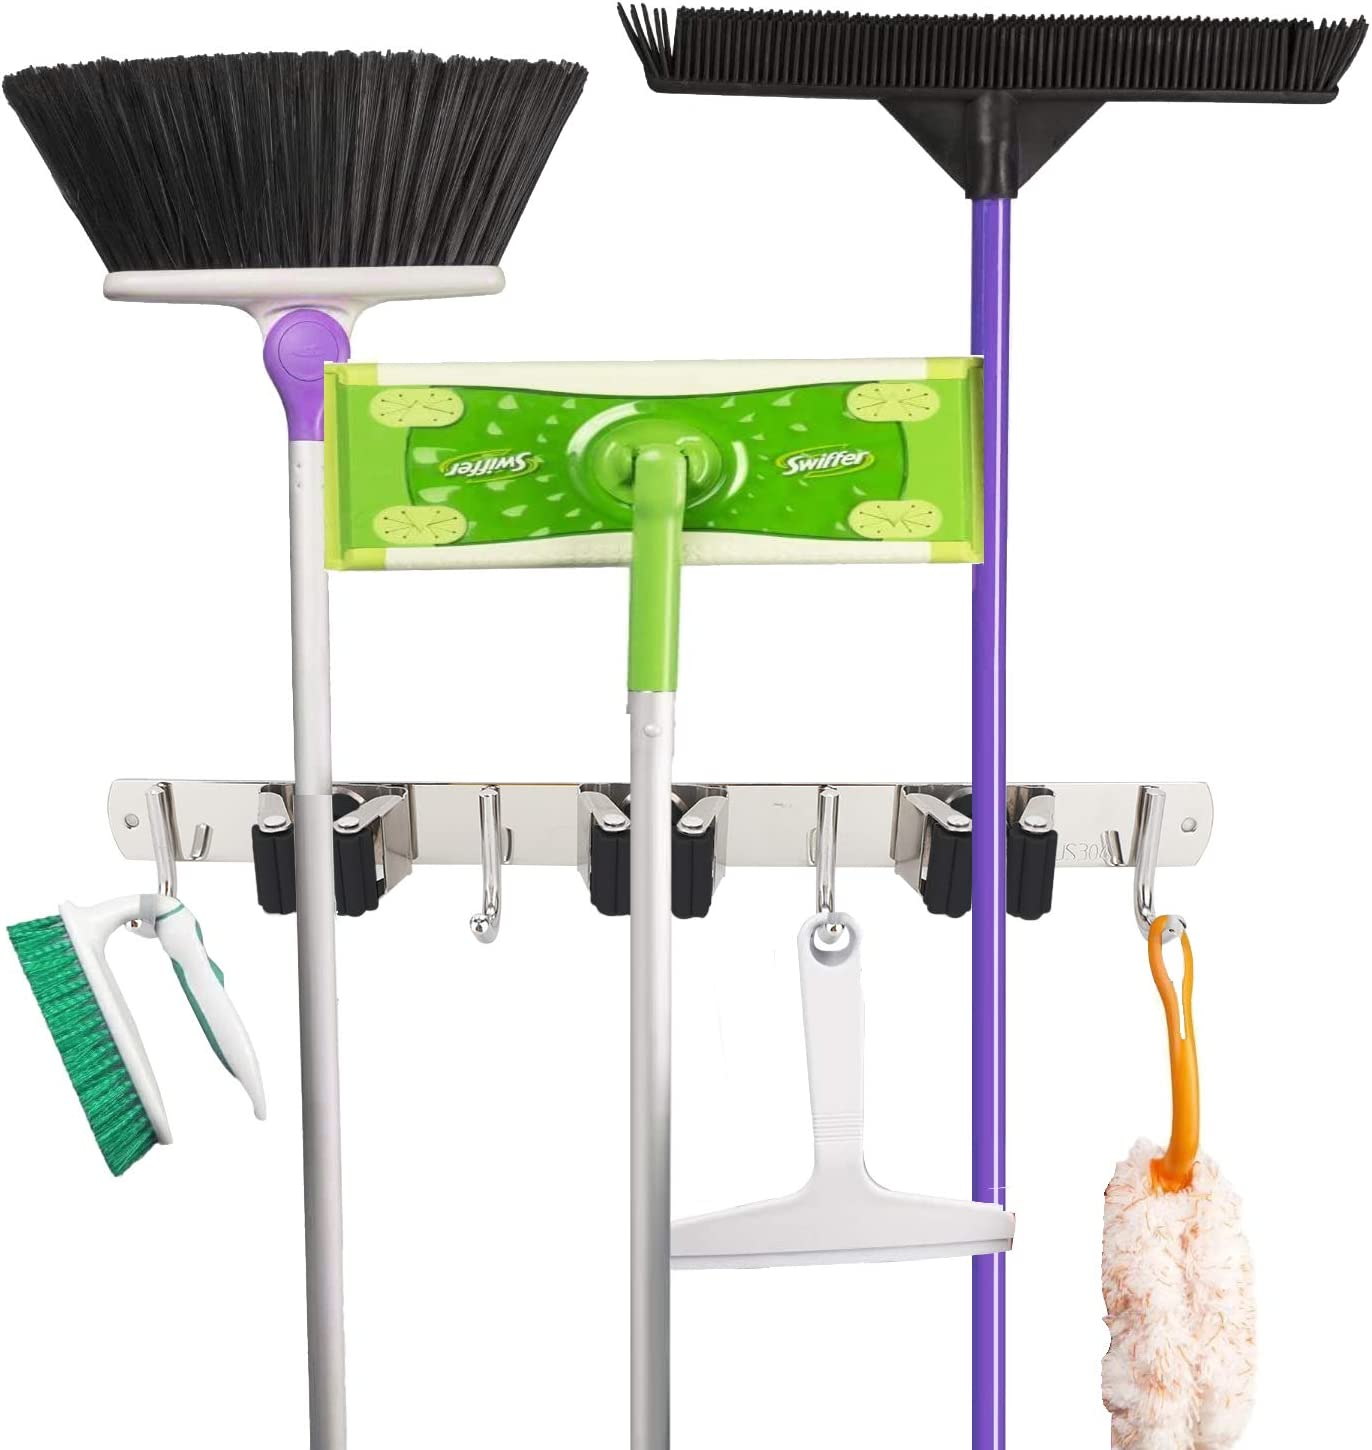 Xpork Broom Mop Holder Garage Laundry Room Garden Office Wall Mounted Stainless Mop Storage Clip Hook for Broom Mop Tool Storage in Kitchen with 3 Position 4 Hooks Grey